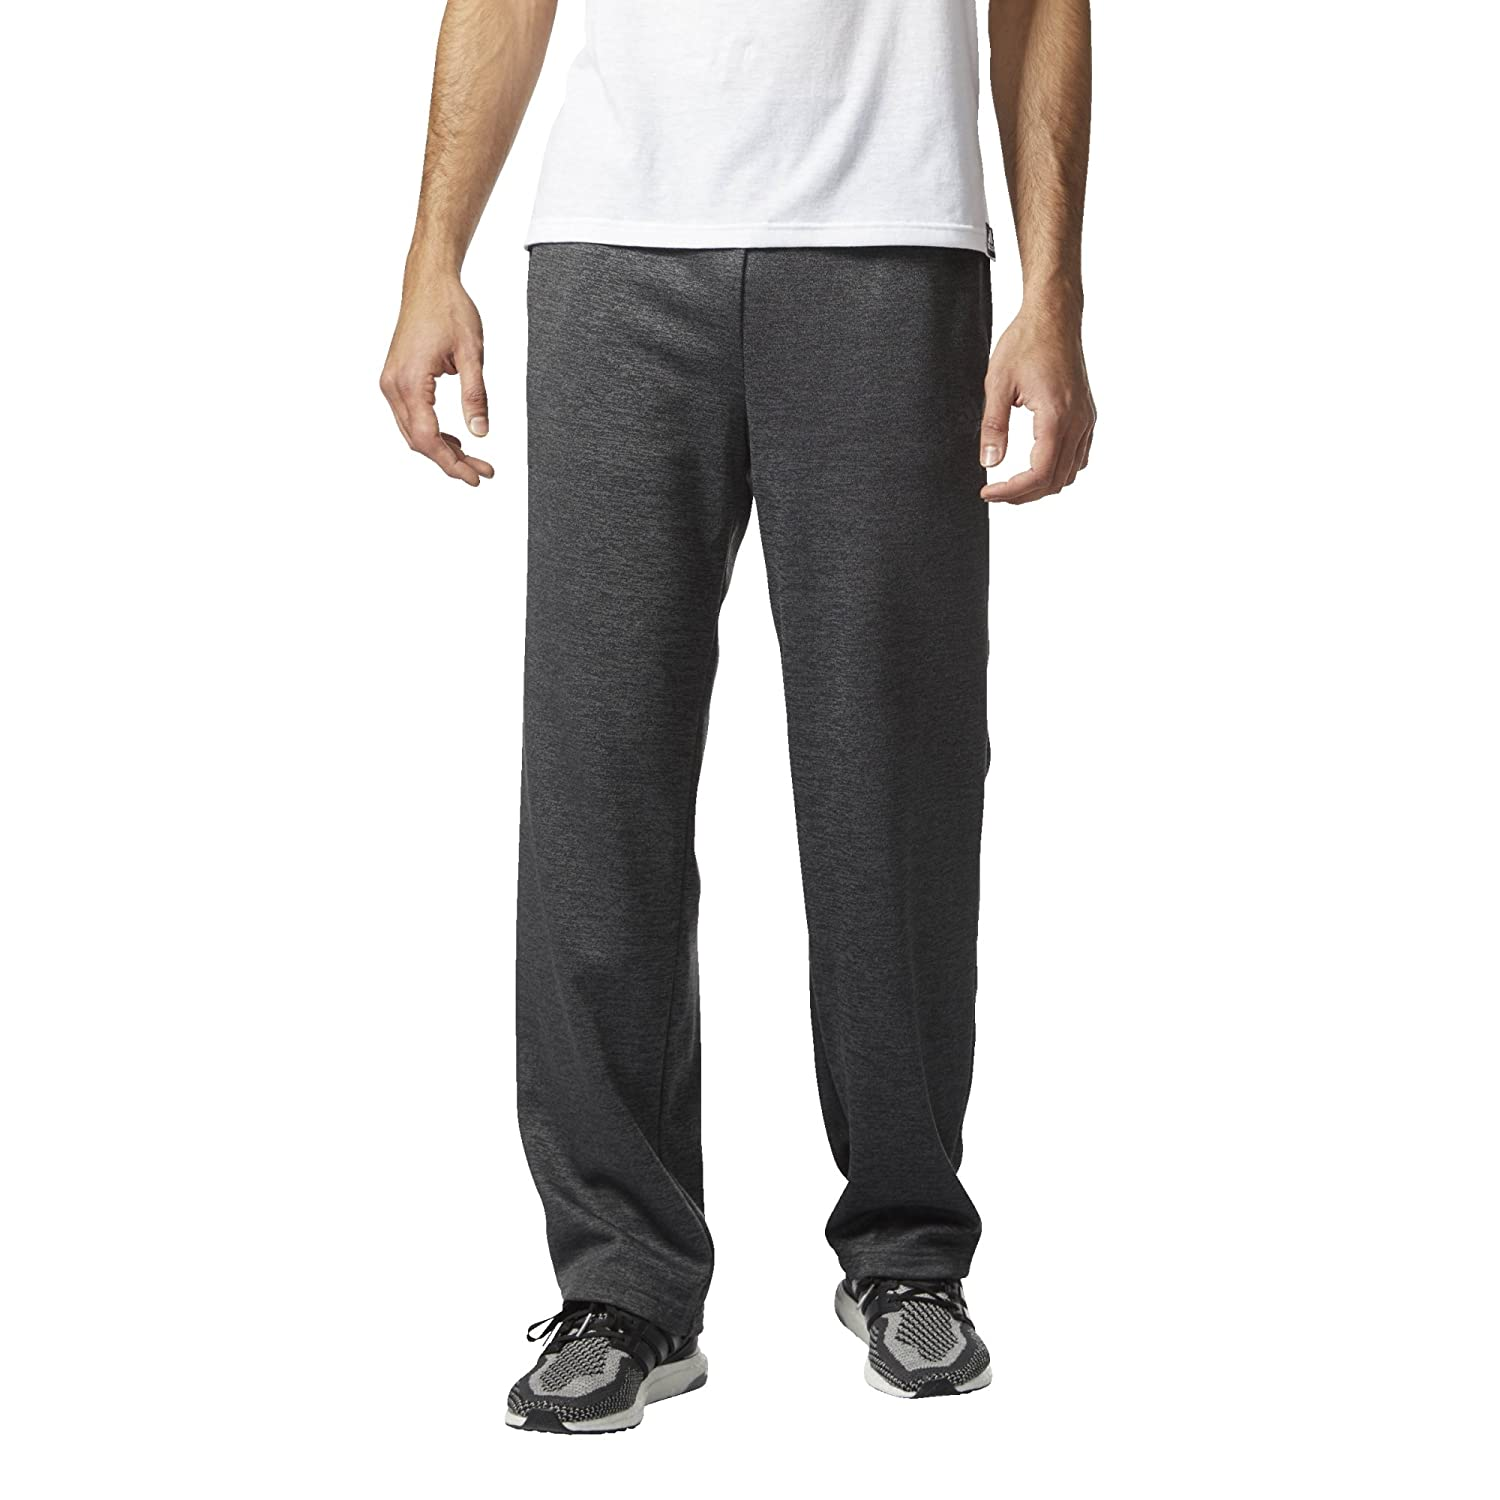 Adidas Men's Team Issue Fleece Open Hem Pant F17AAM753-P